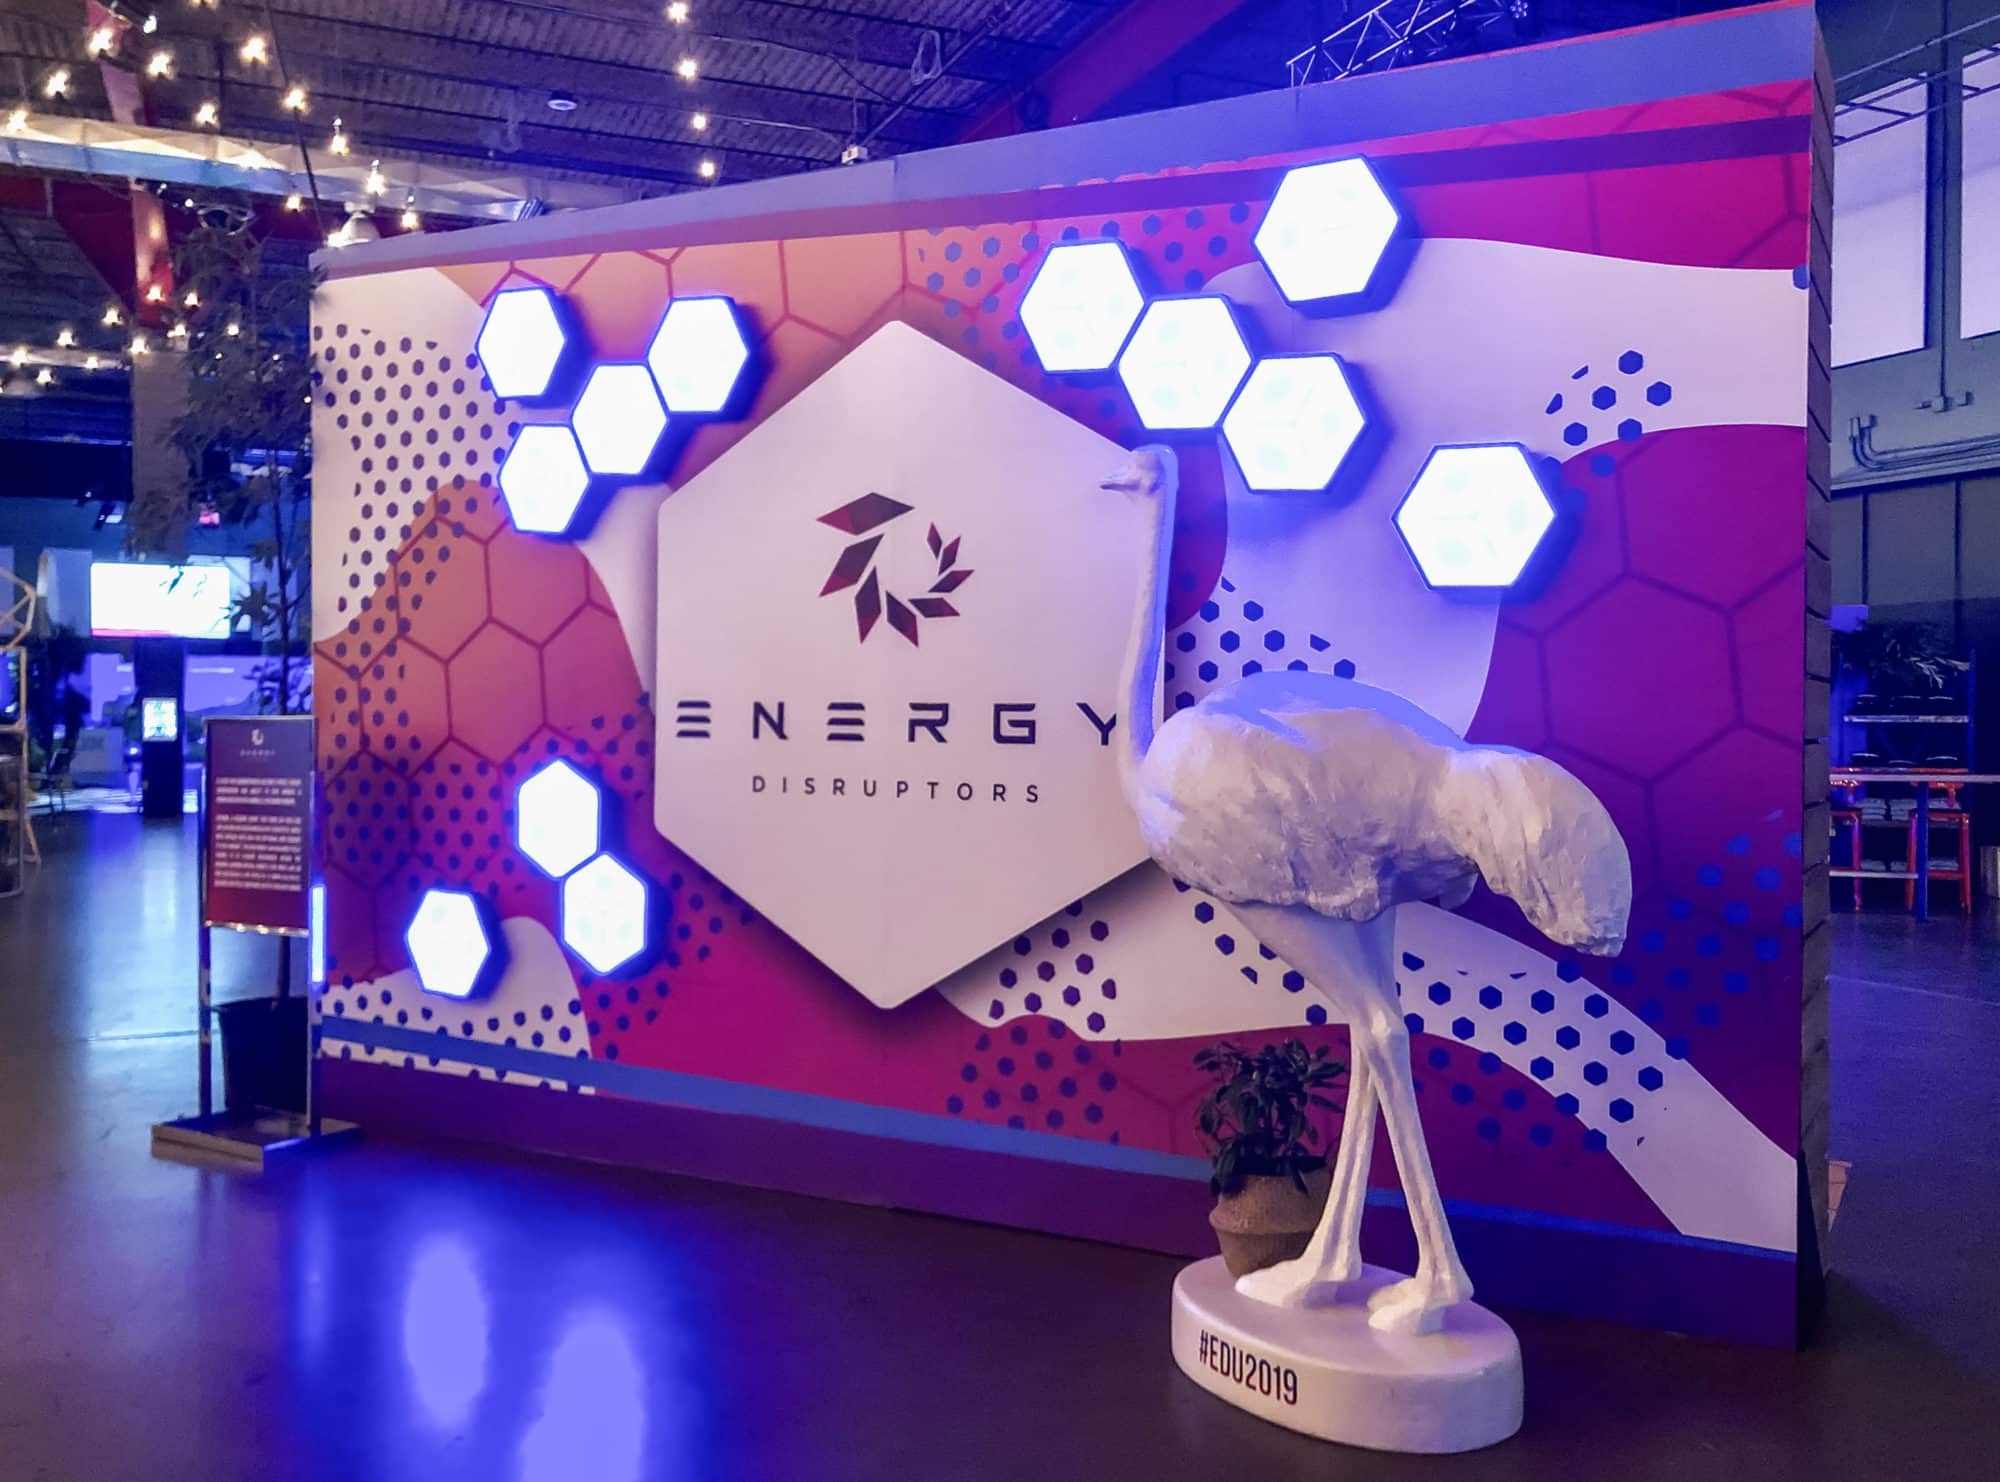 Custom-printed vinyl wall decals and wraps at a tradeshow event booth